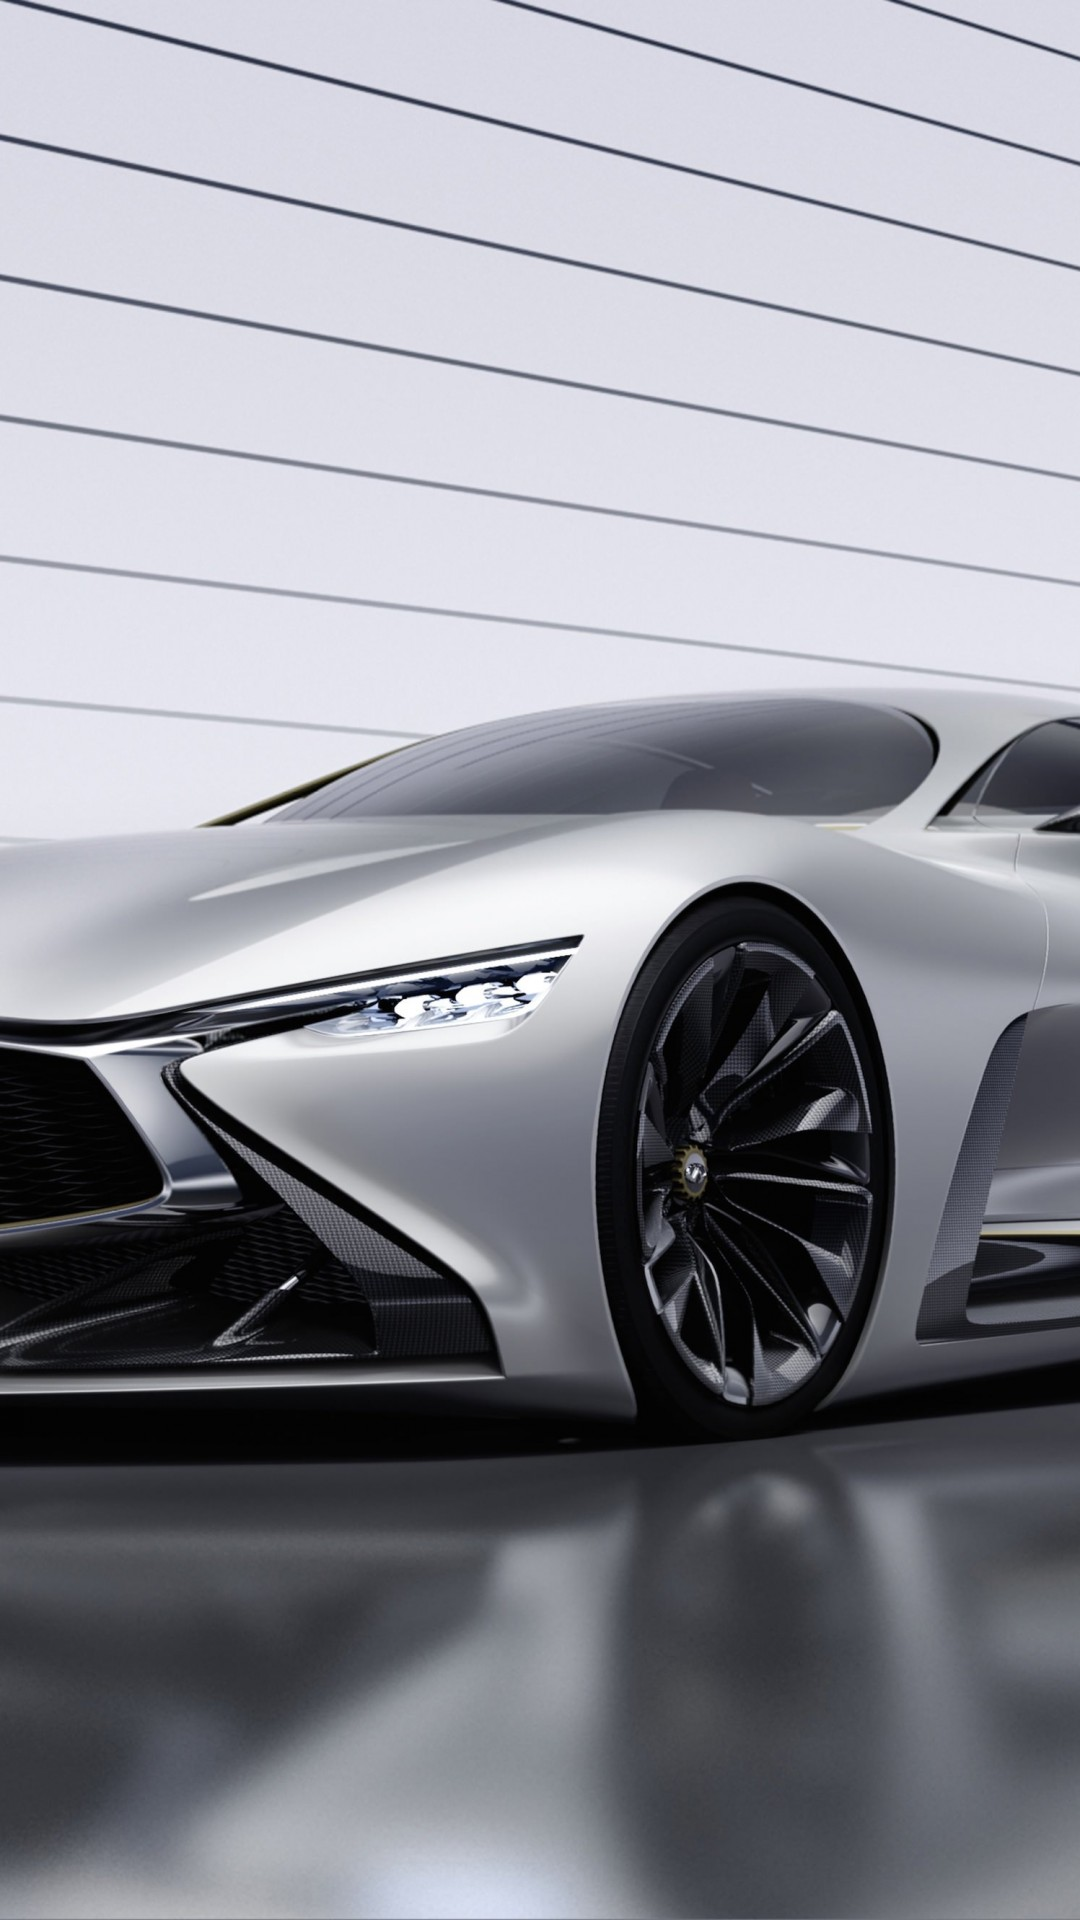 Infiniti Vision GT Concept Wallpaper for SAMSUNG Galaxy Note 3